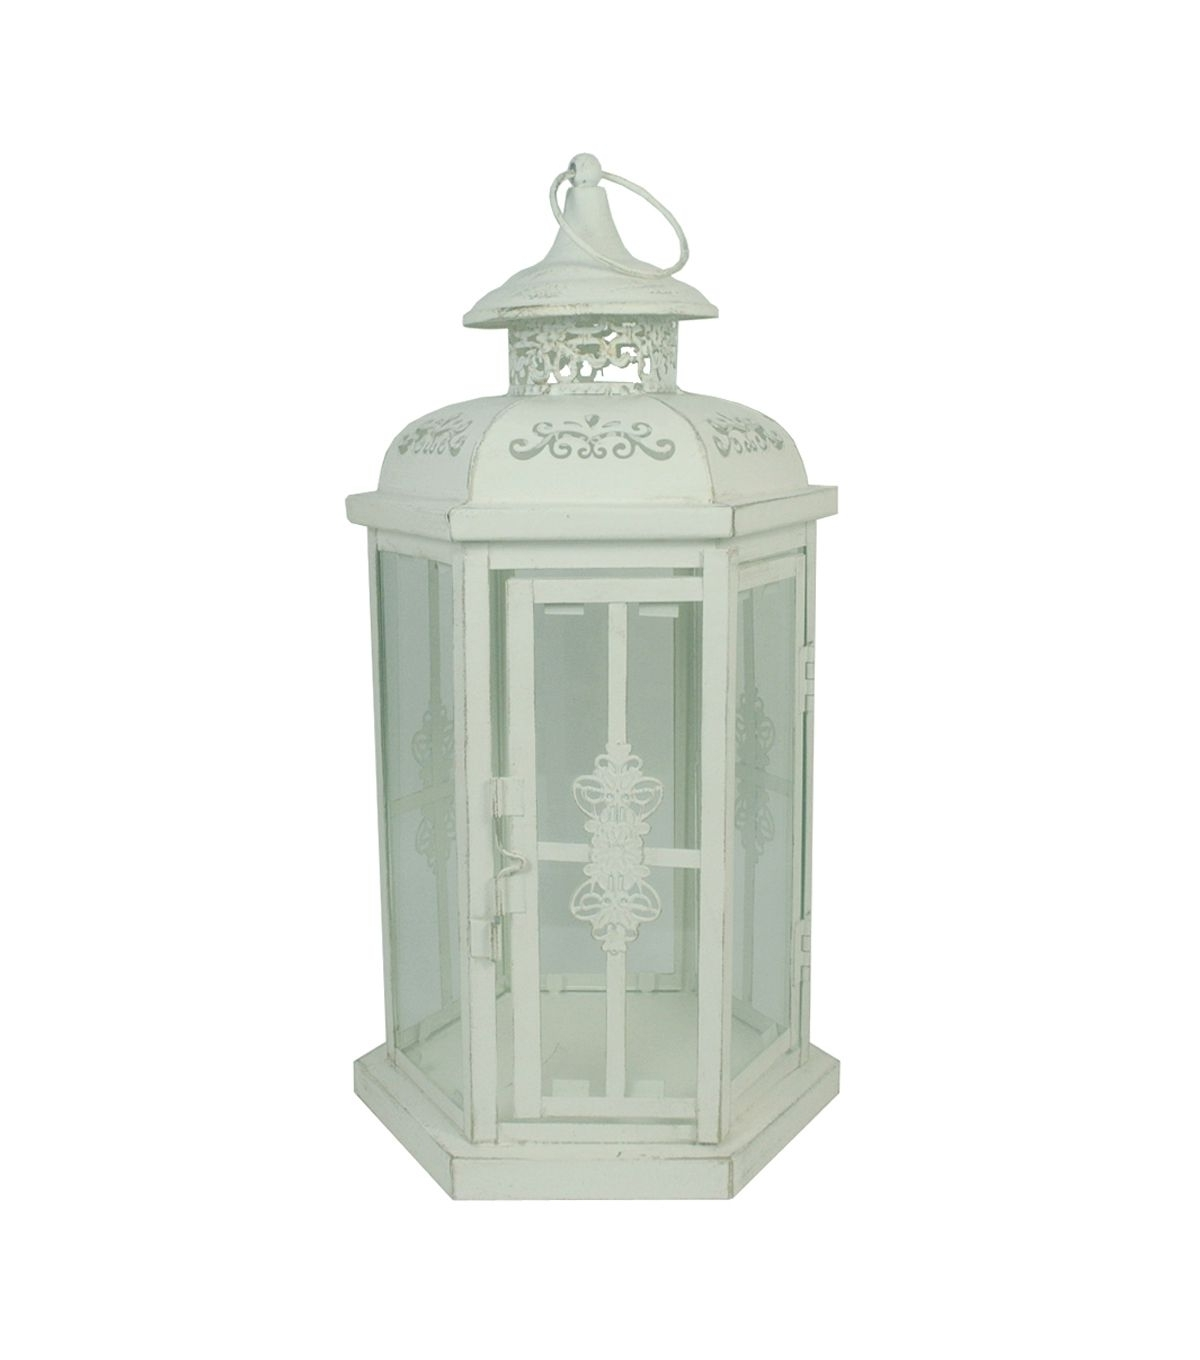 Hudson 43™ Candle & Light Collection Distressed Metal Lantern White Intended For Best And Newest Joanns Outdoor Lanterns (View 7 of 20)